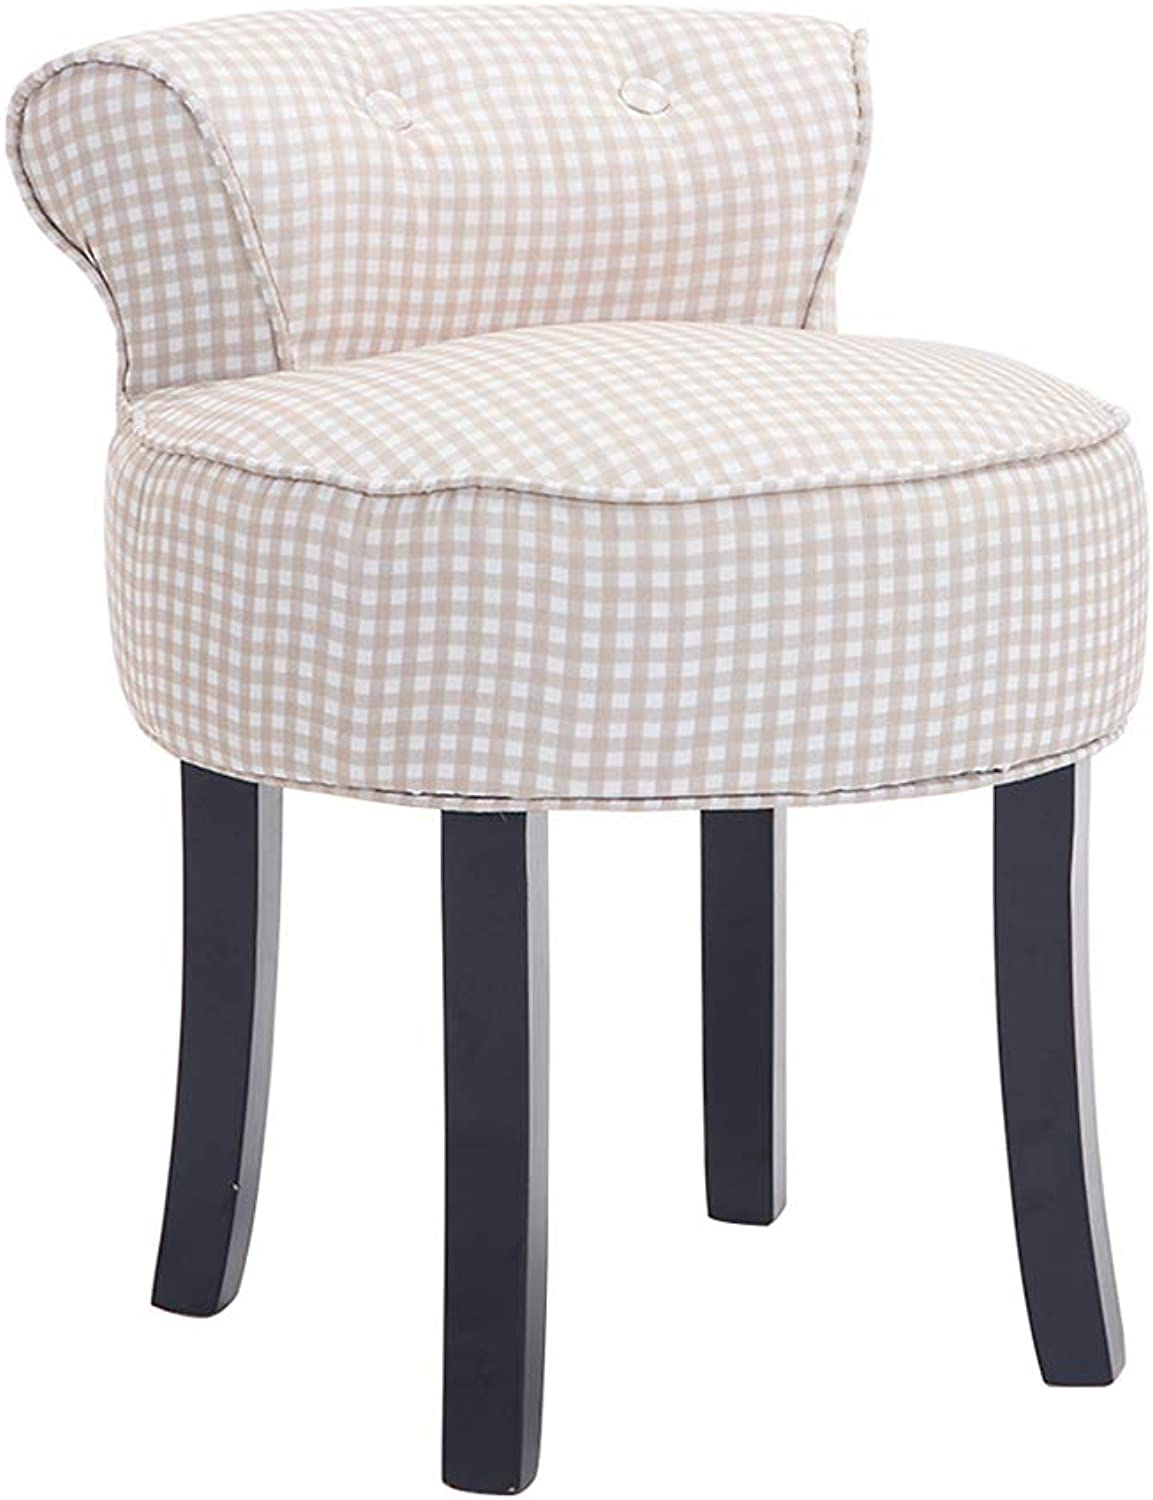 Armchairs Dressing Chairs Makeup Stools,Solid Wood Legs,Cotton and Linen Fabric,Loading 150KG,for Dressing Room Living Room,Size 40cm40cm57cm